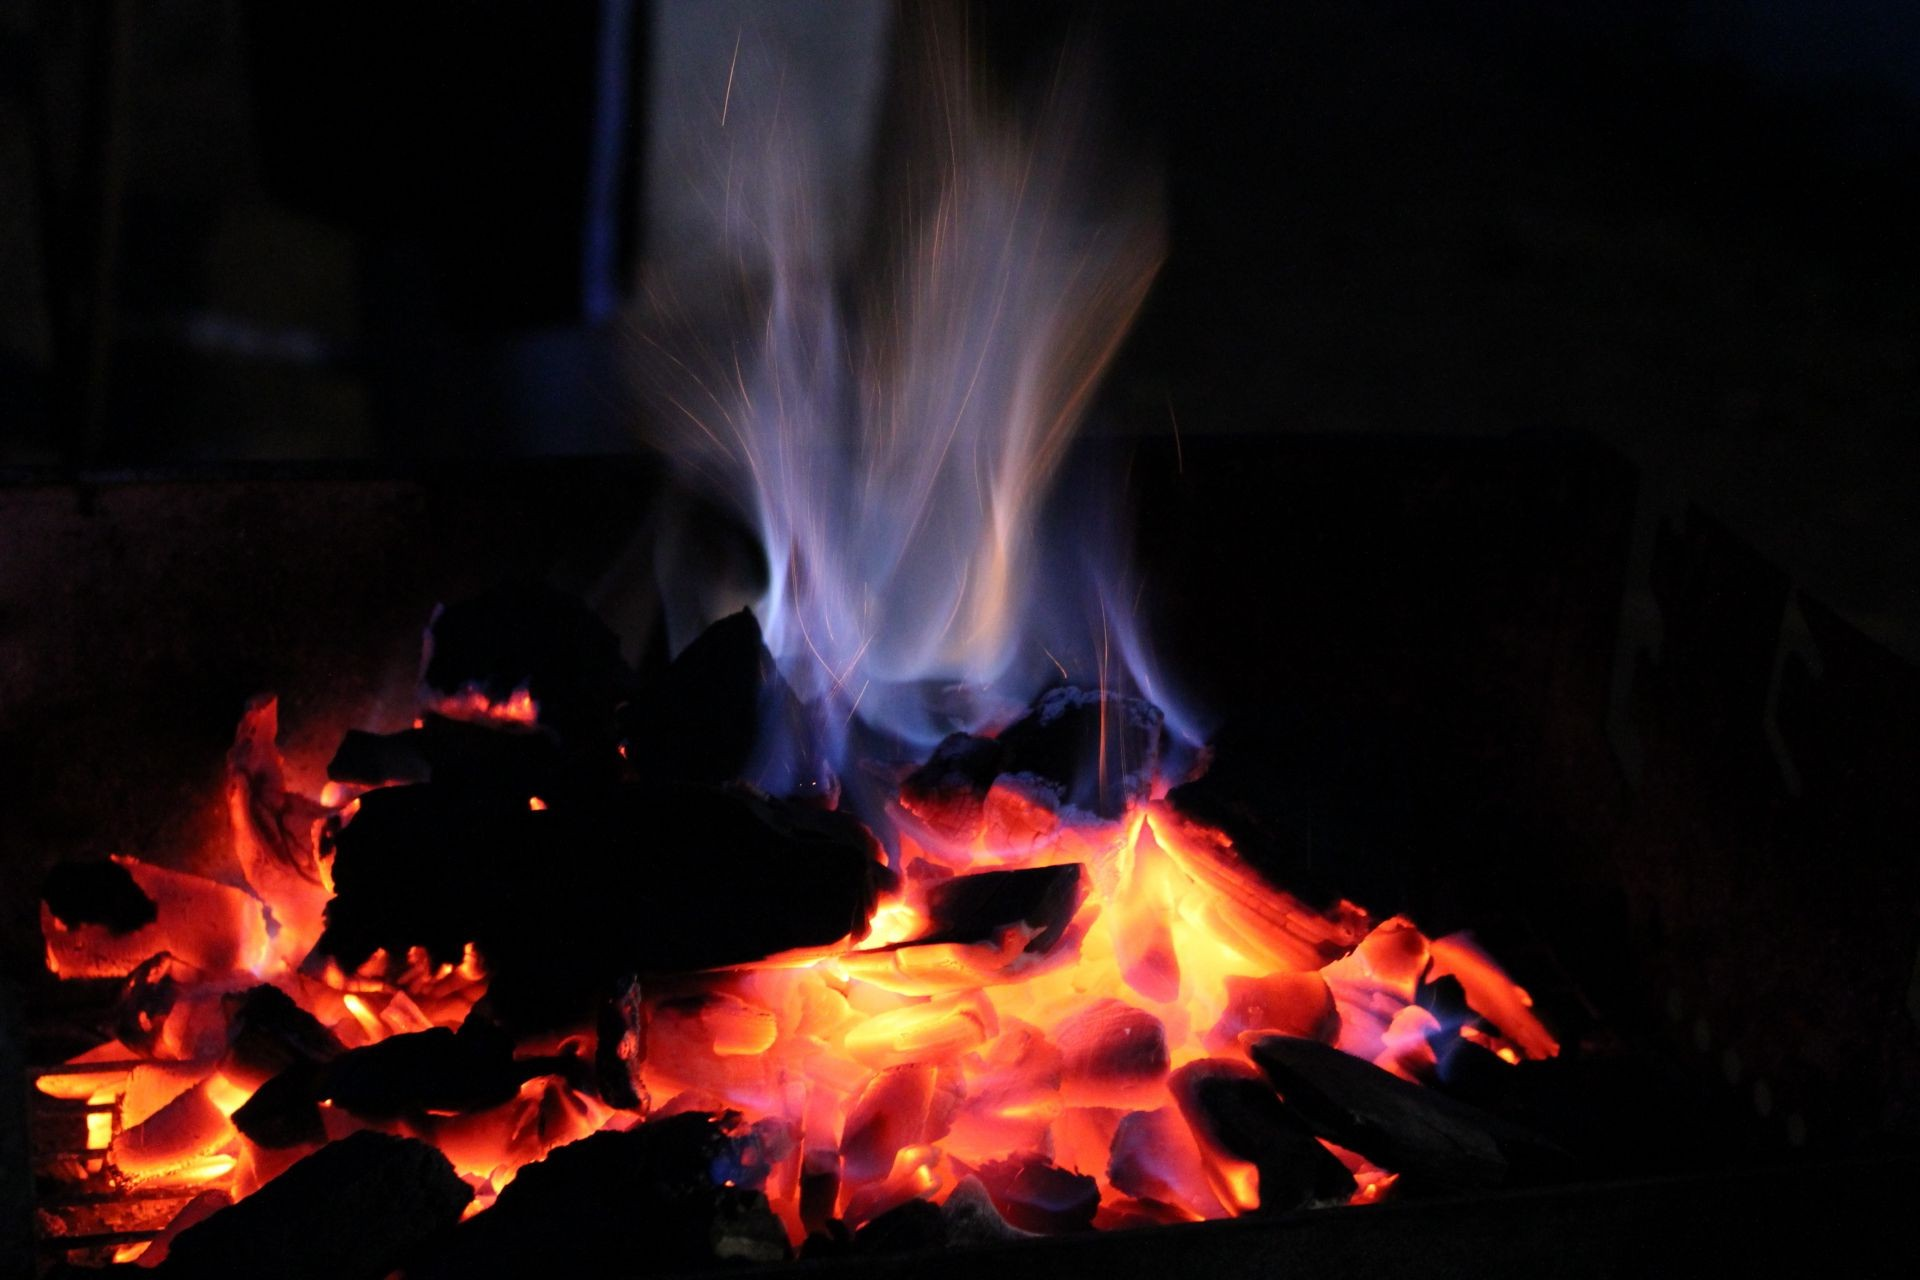 fire flame fireplace bonfire campfire heat hot burn smoke firewood ignite blaze flammable burnt warmly fuel coal furnace wildfire inferno ash